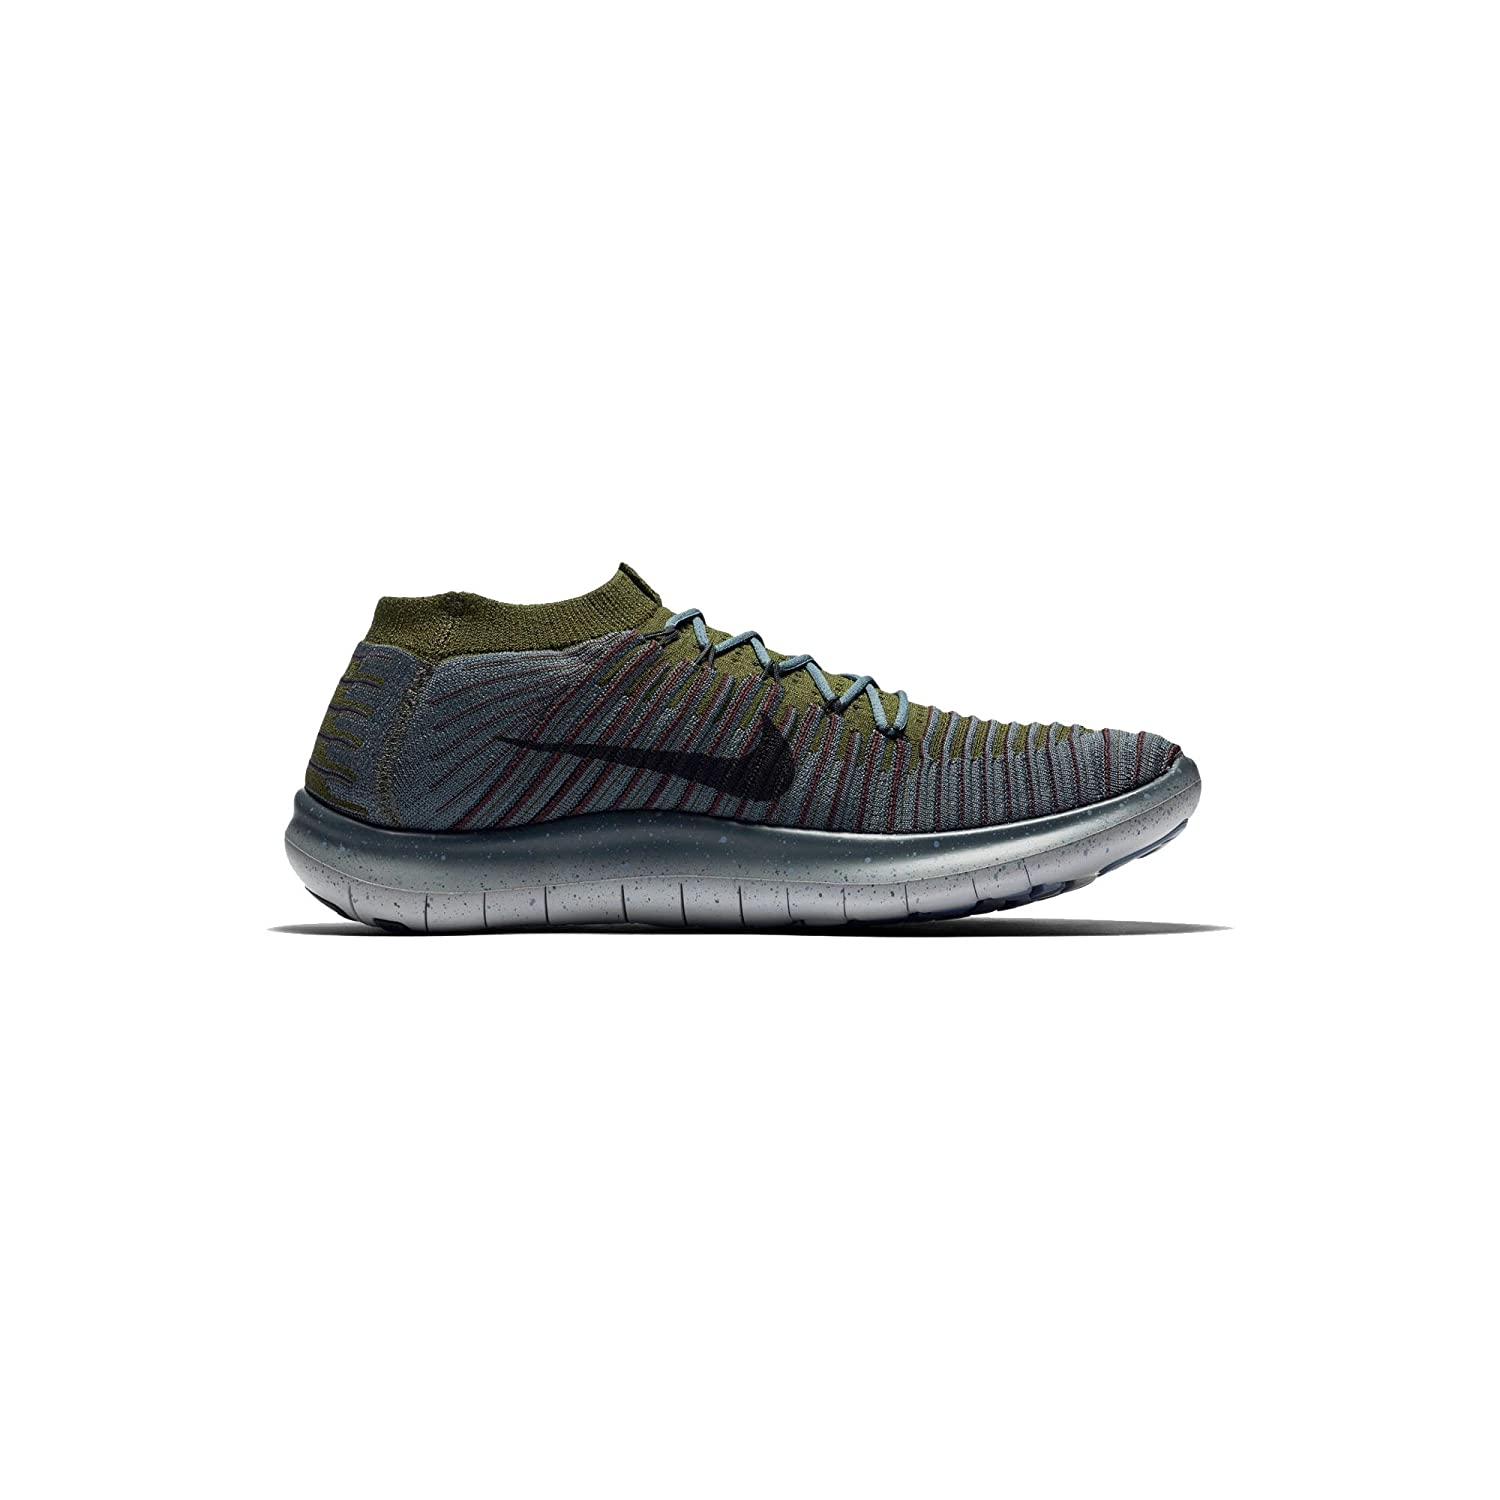 7ad2c80bd43b Nike Men s Free RN Motion Flyknit Running Blue Fox Green 834584-403 (10.  5)  Buy Online at Low Prices in India - Amazon.in